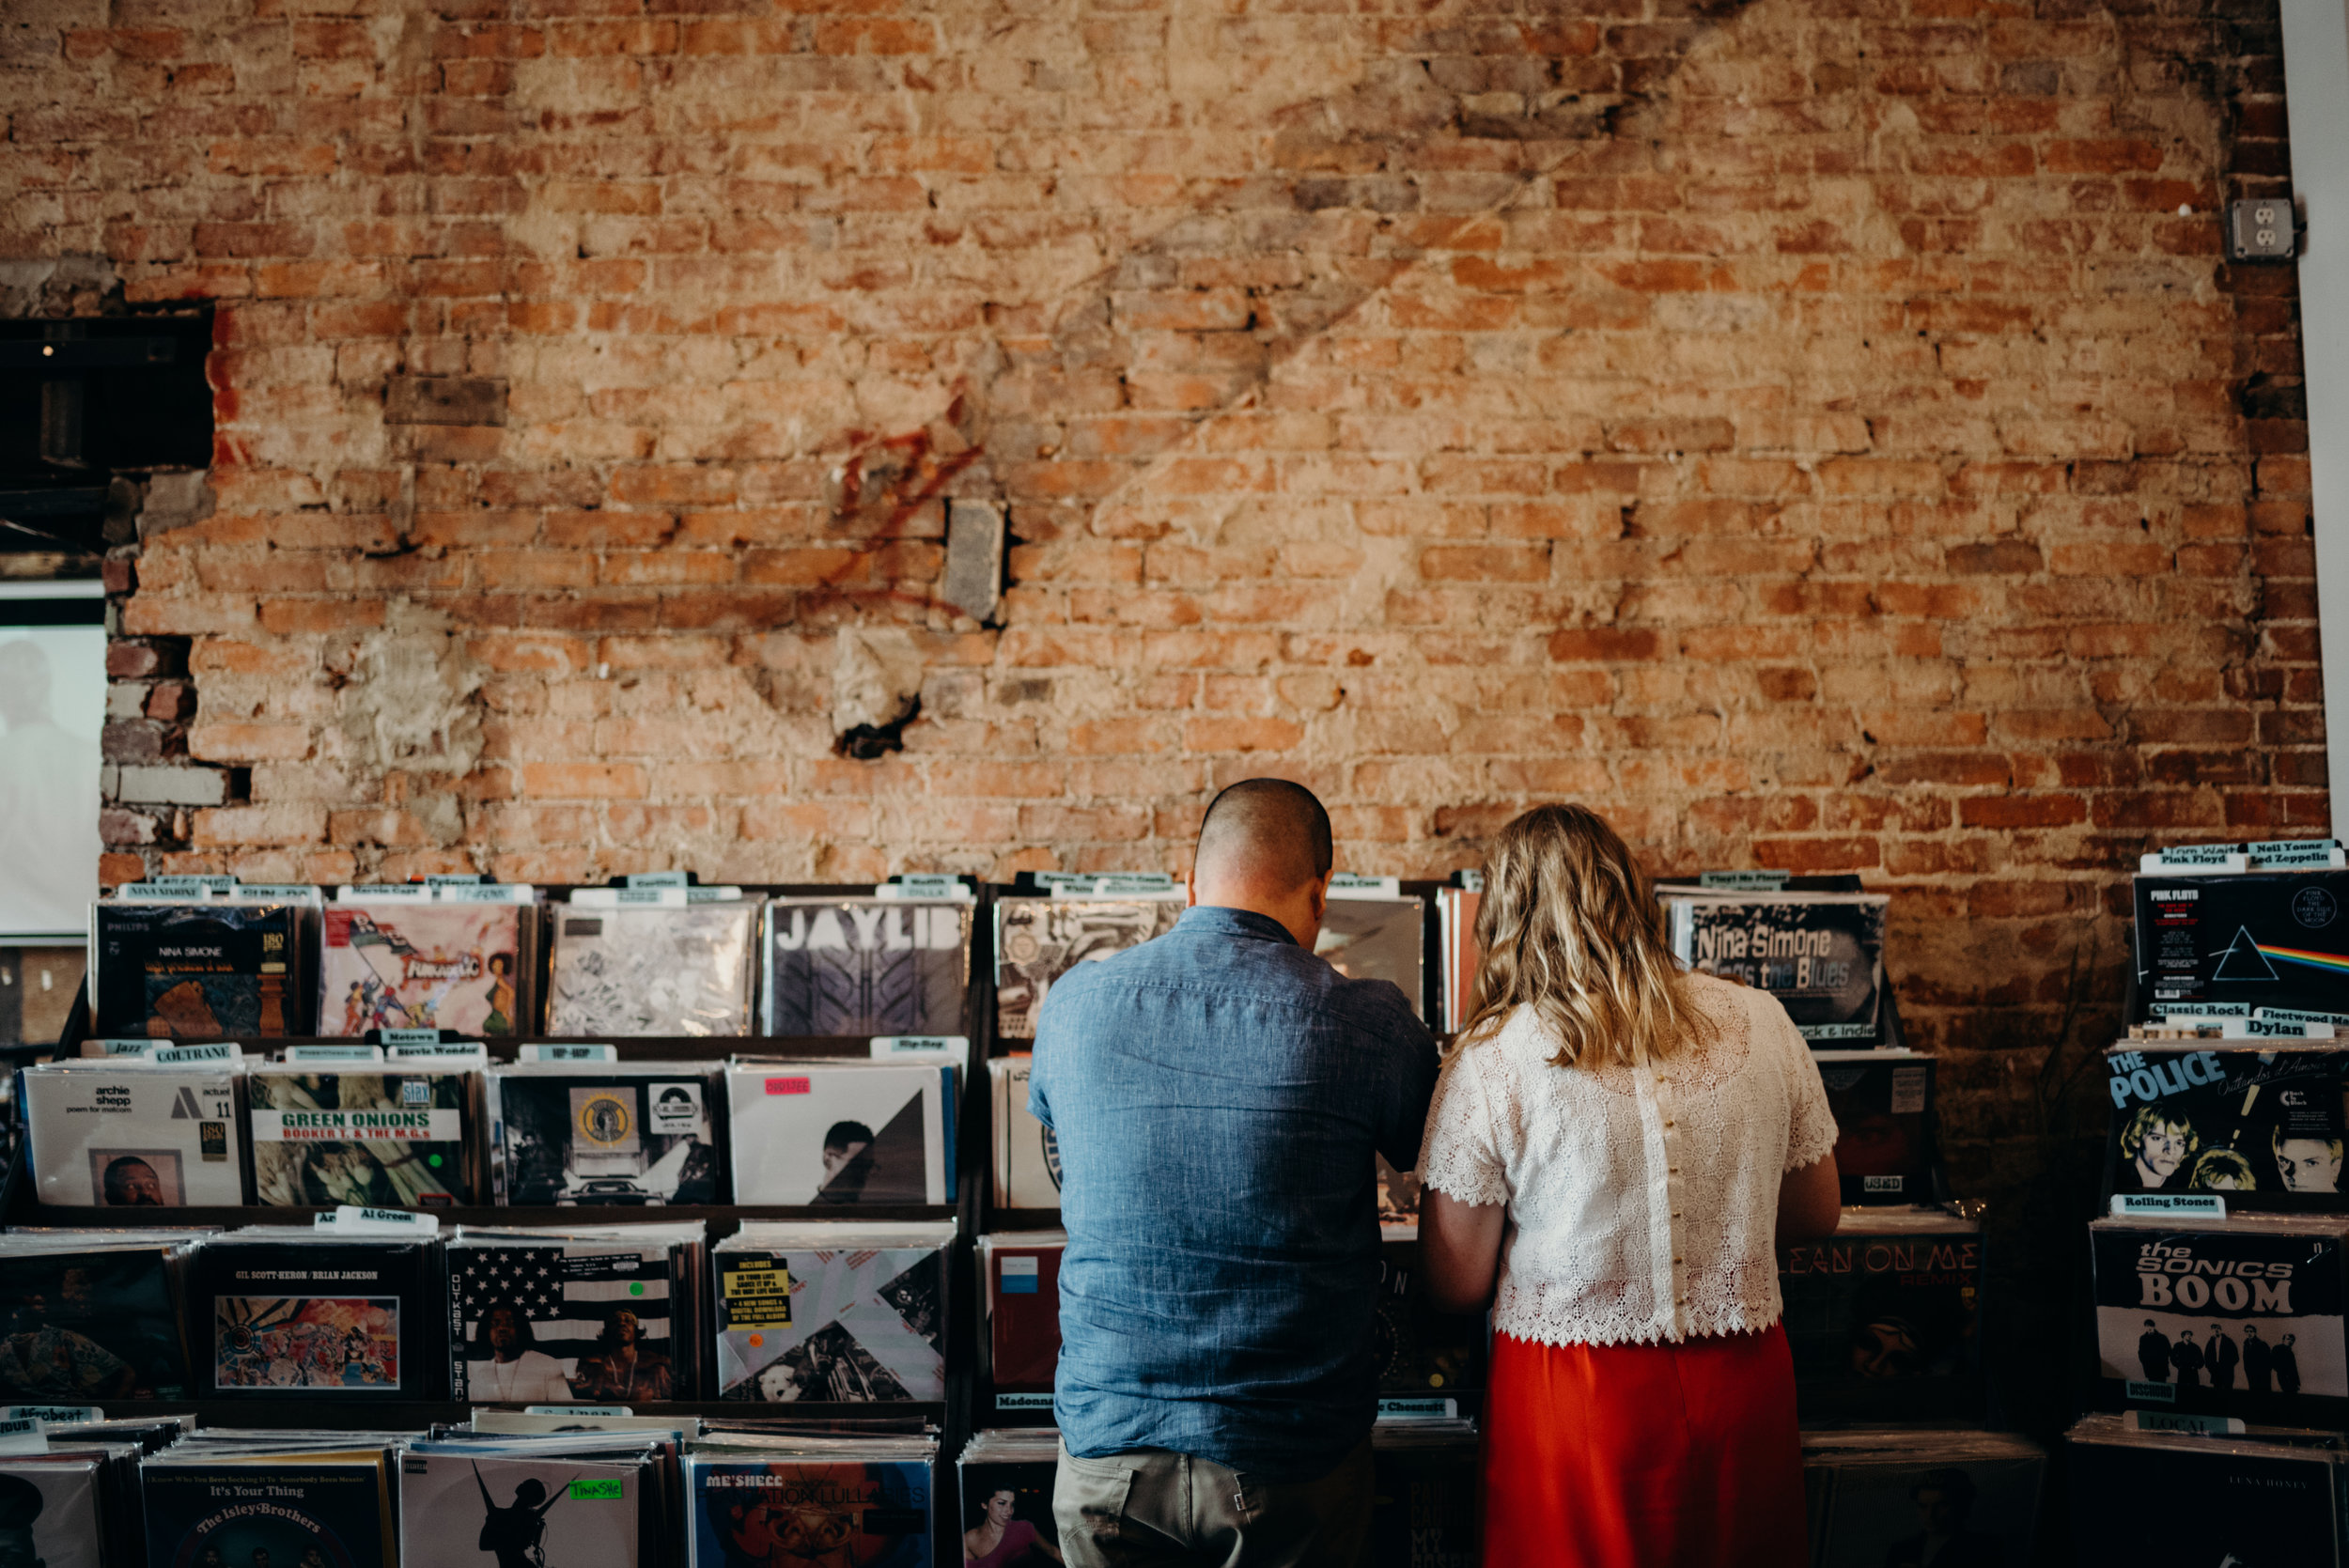 engagement photo session at Songbyrd record store in Washington, DC